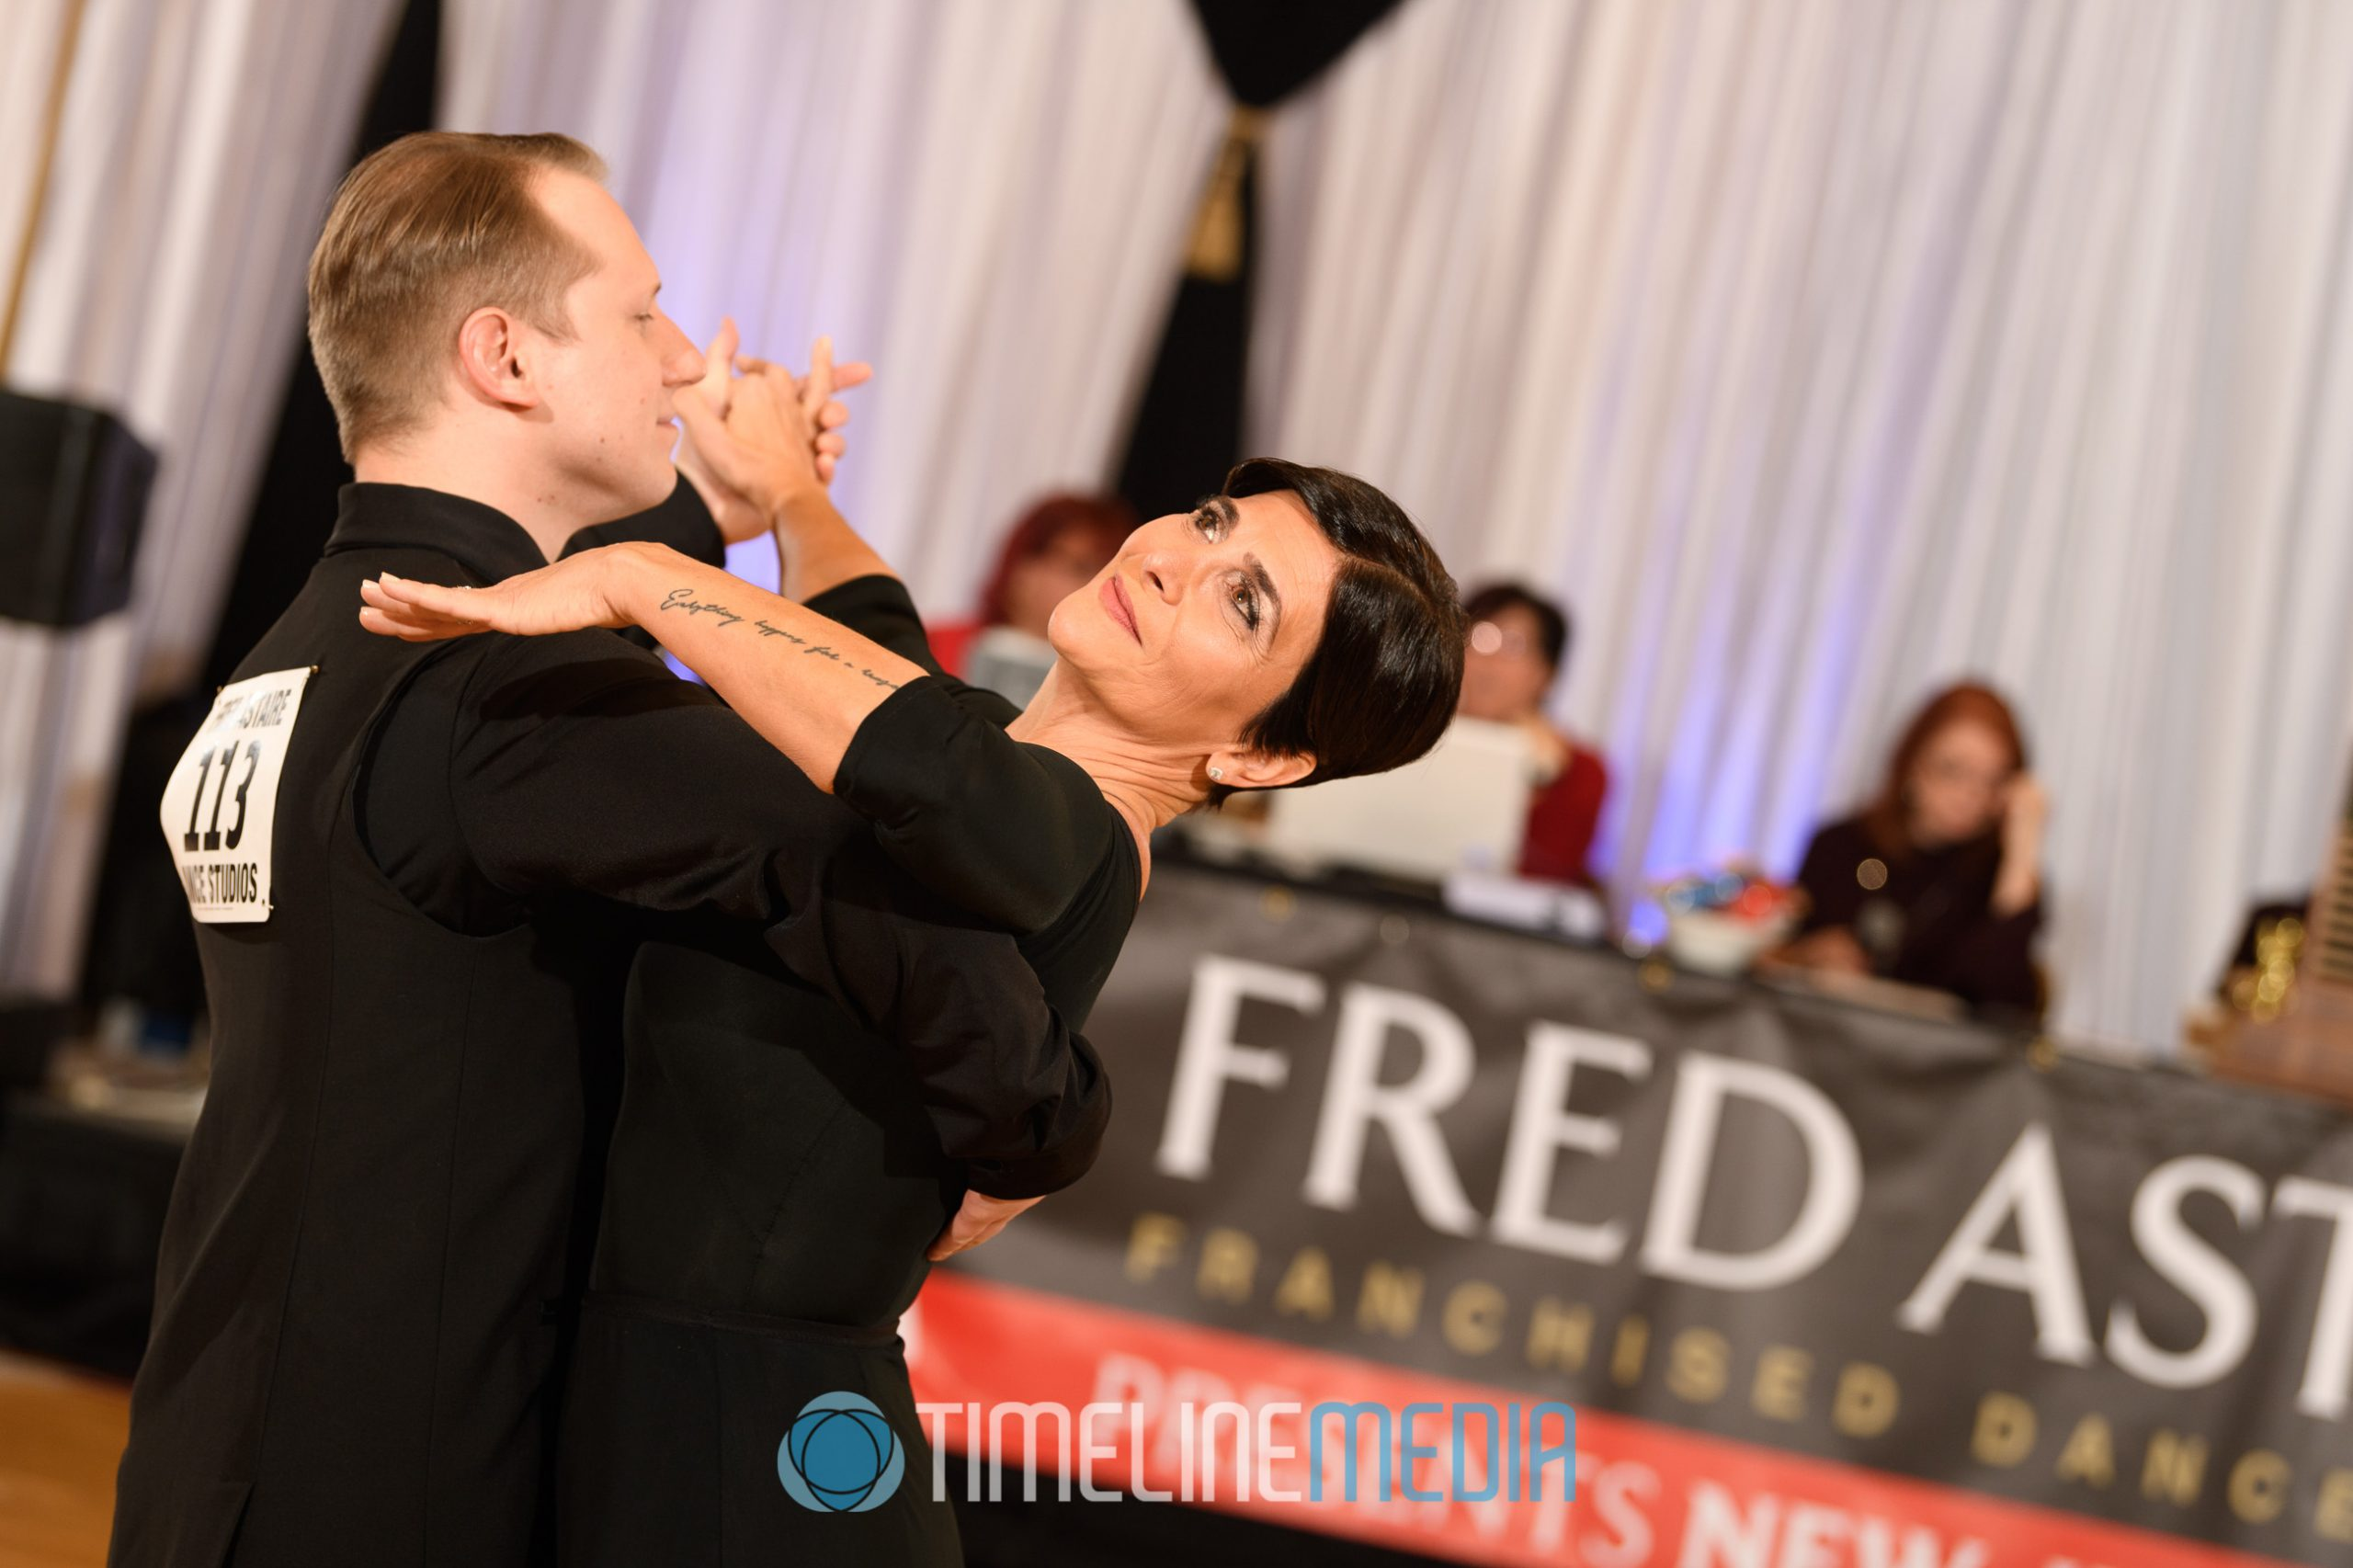 Dancers competing at the NJ Fred Astaire Team Match ©TimeLine Media